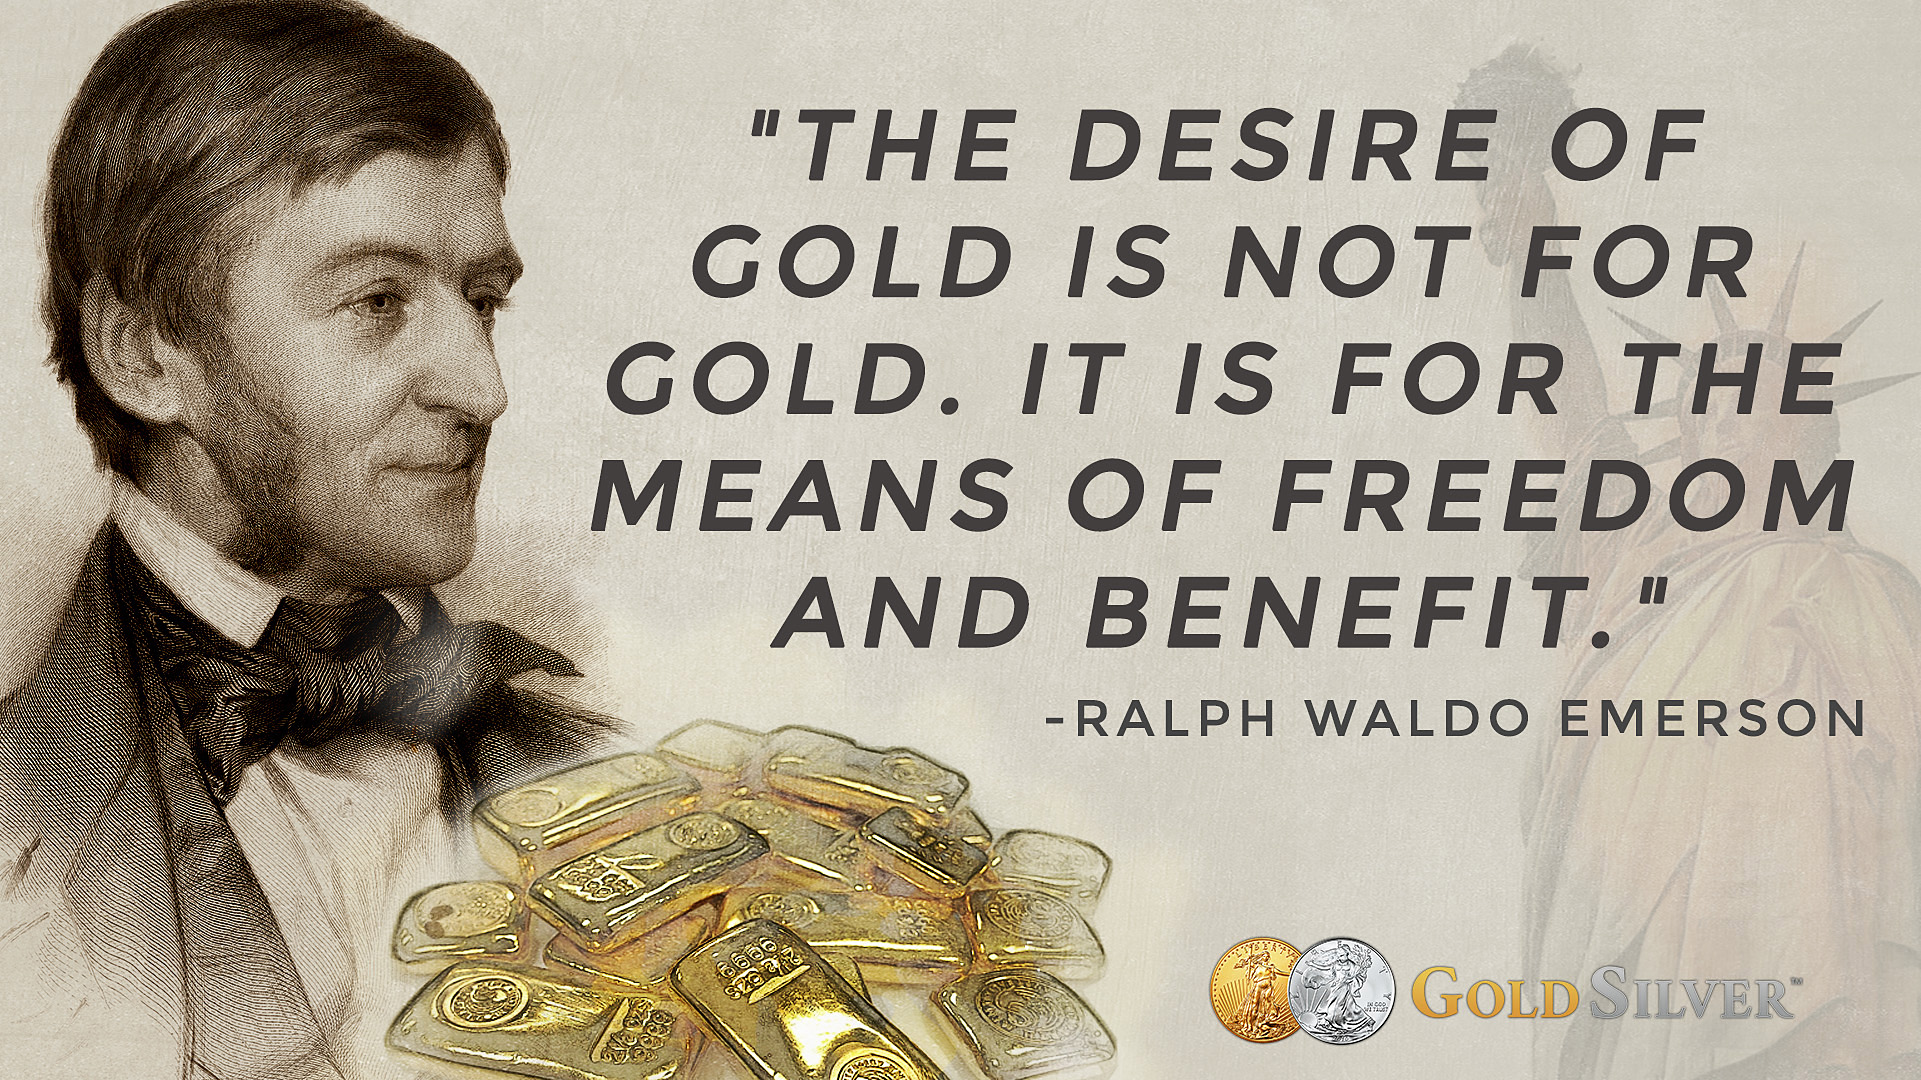 The 101 Best Gold Quotes From History – GoldSilver - GoldSilver com